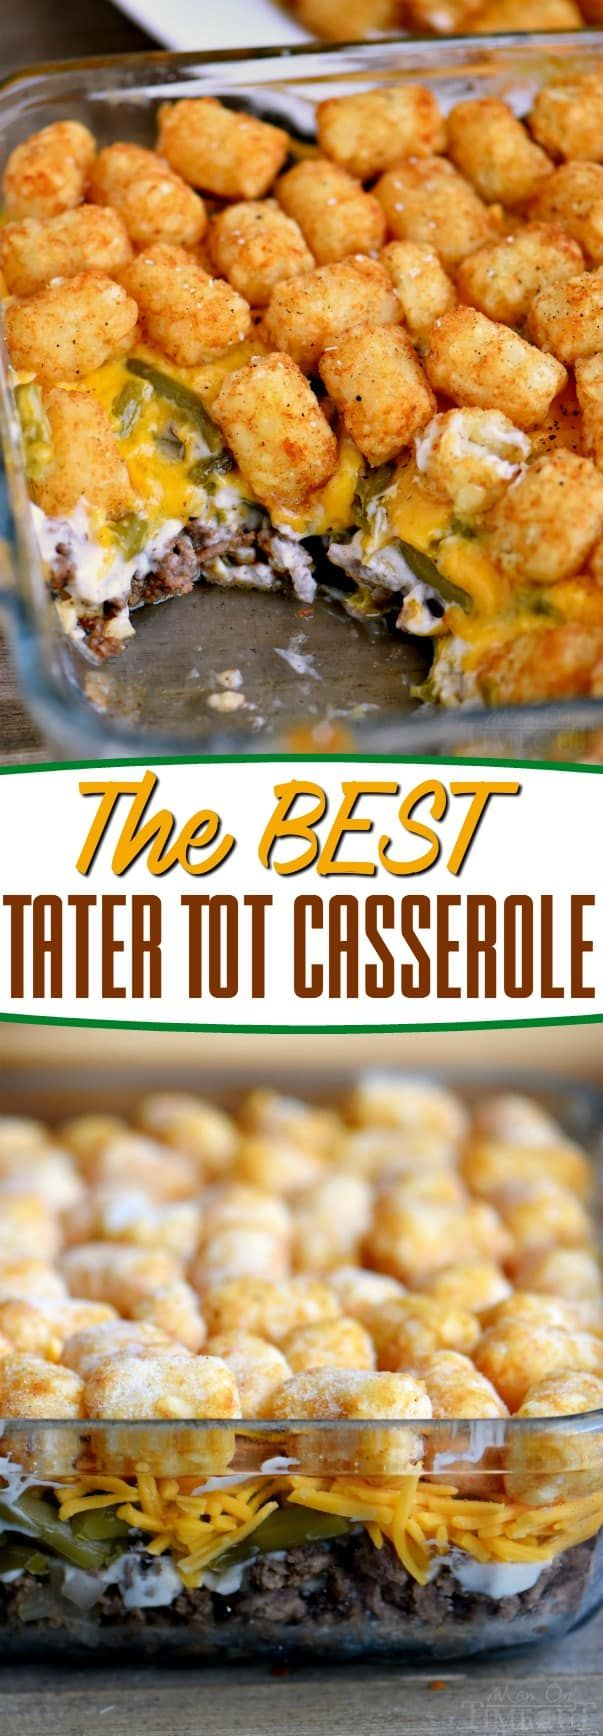 Truly The Best Tater Tot Casserole Recipe Around Layers Of Amazing Flavor Combine For An Easy And Delicious Dinner Any Ni Yummy Dinners Recipes Easy Casserole